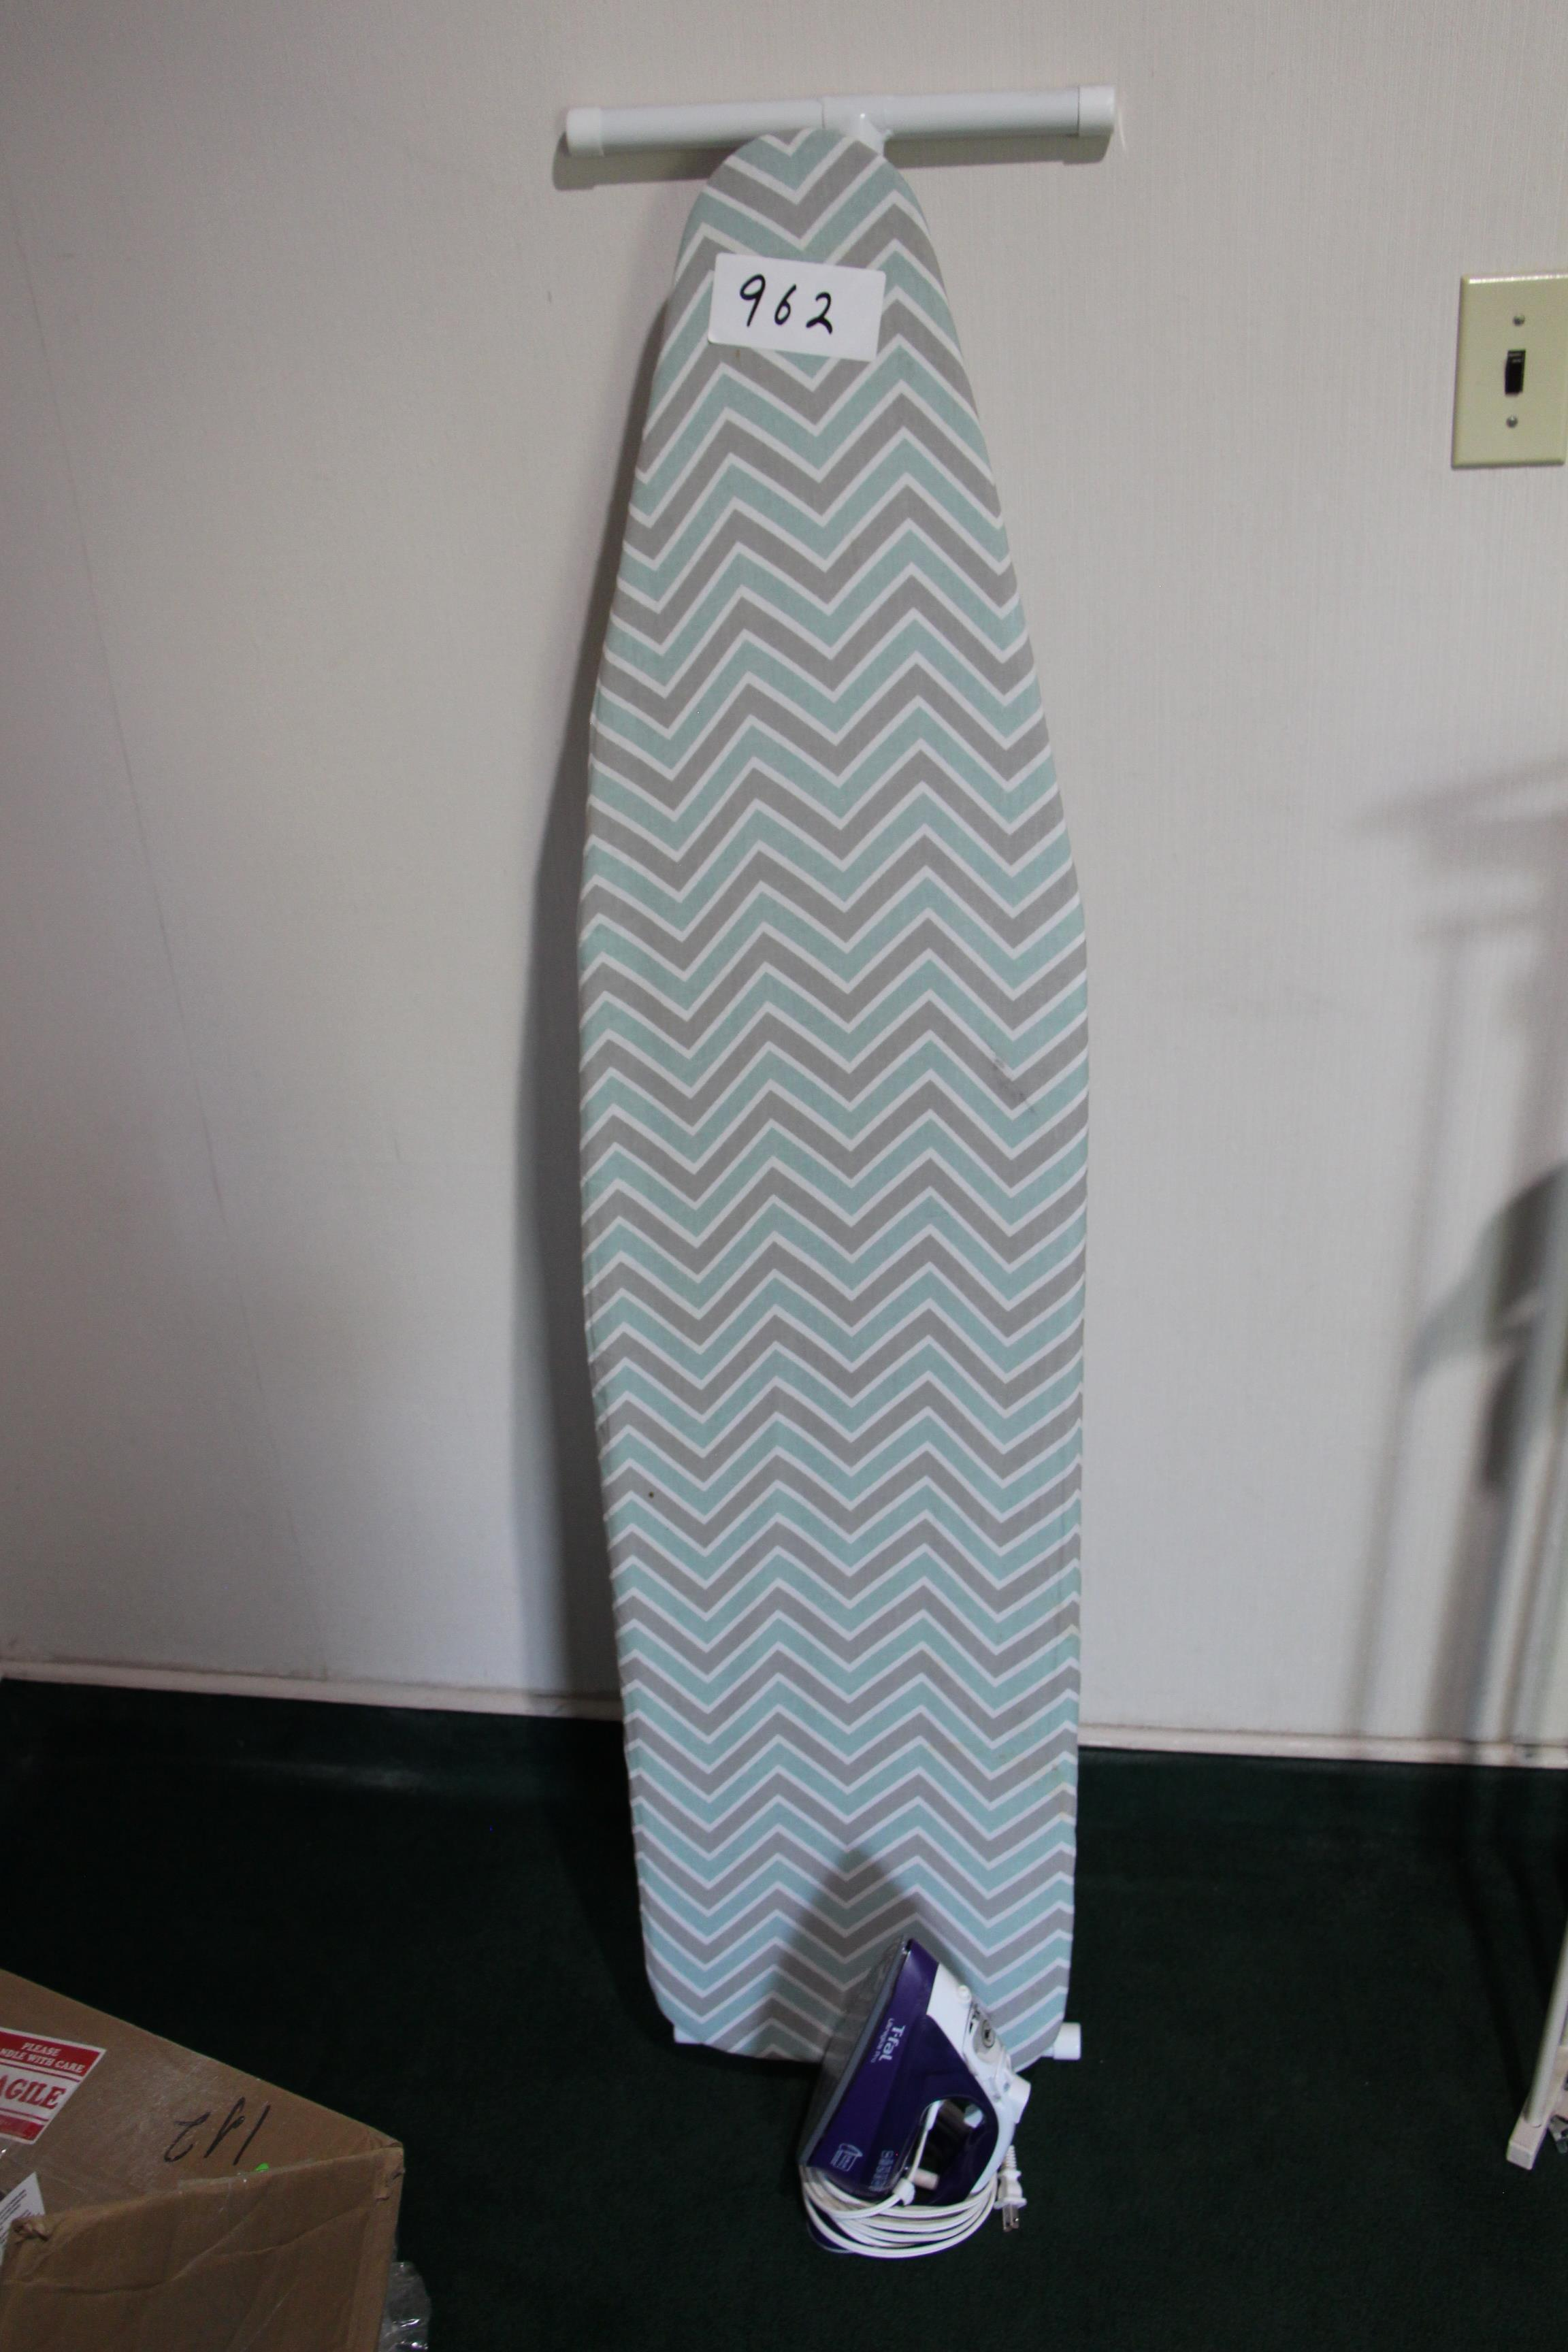 Lot 962 - Lot electric steam iron and ironing board